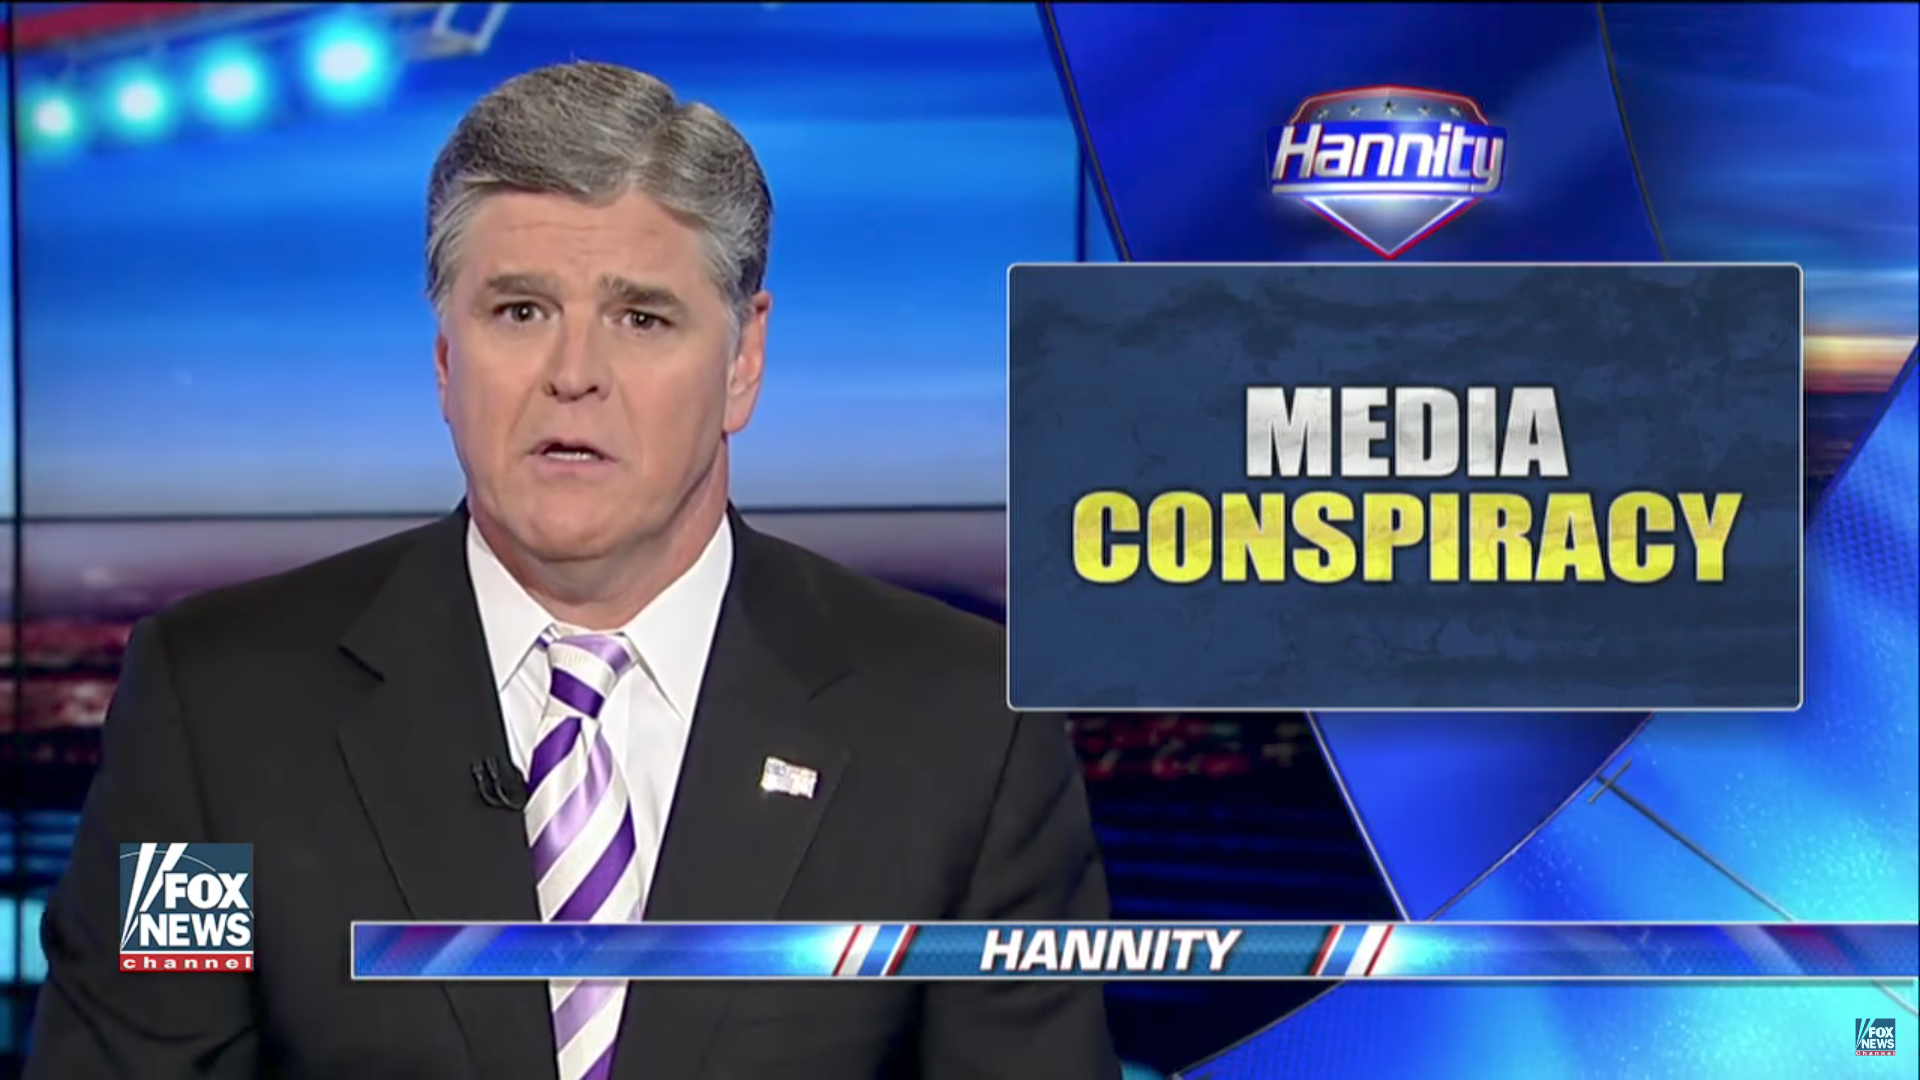 Sean Hannity of Fox News